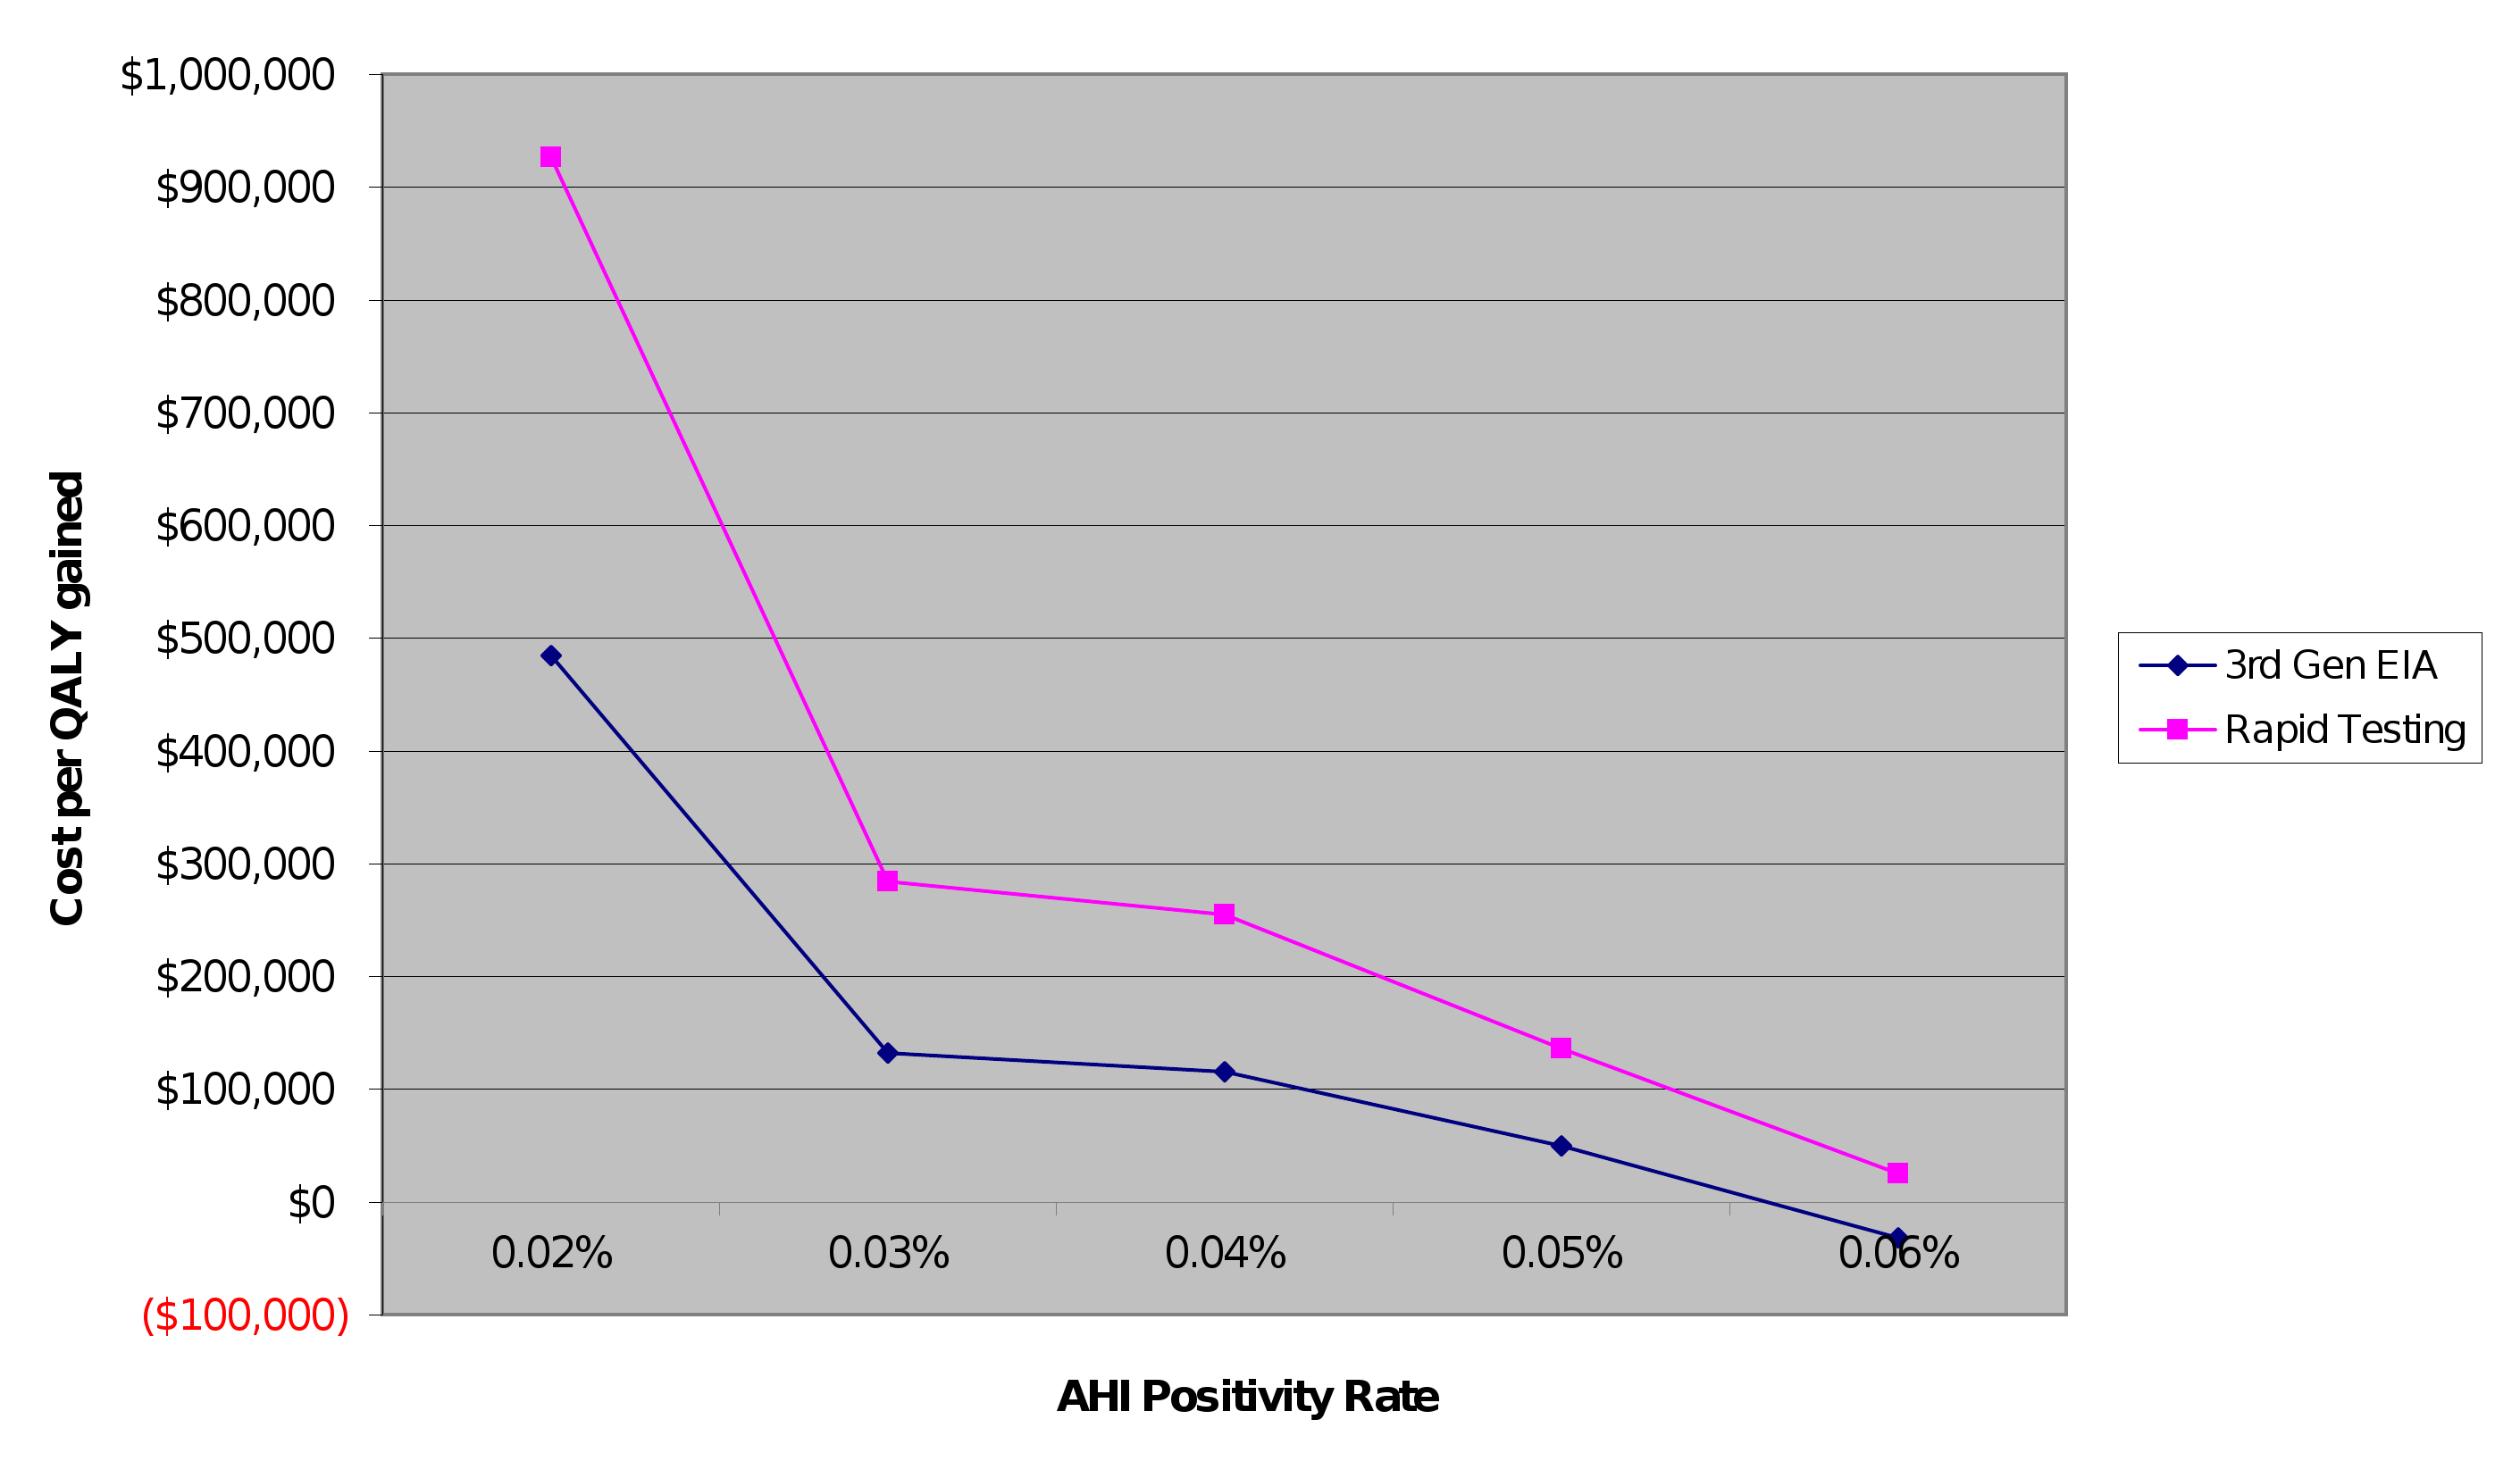 Sensitivity analysis: relationship between AHI positivity rate and cost per QALY gained.